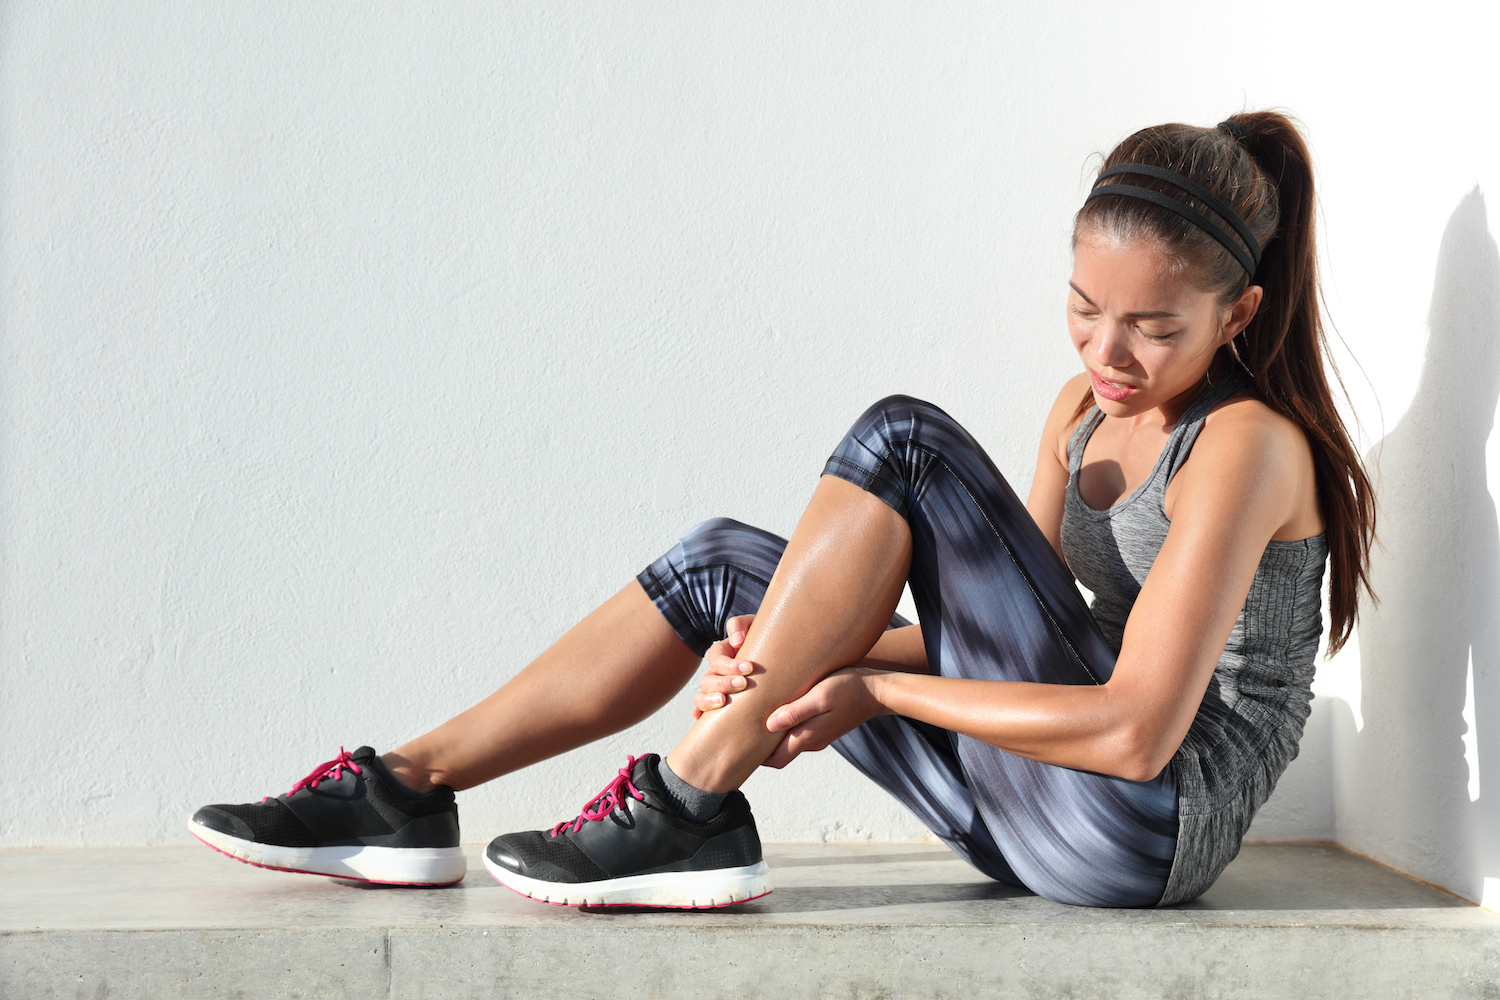 Why Do I Get Sore Days After I've Worked Out? | Live Science